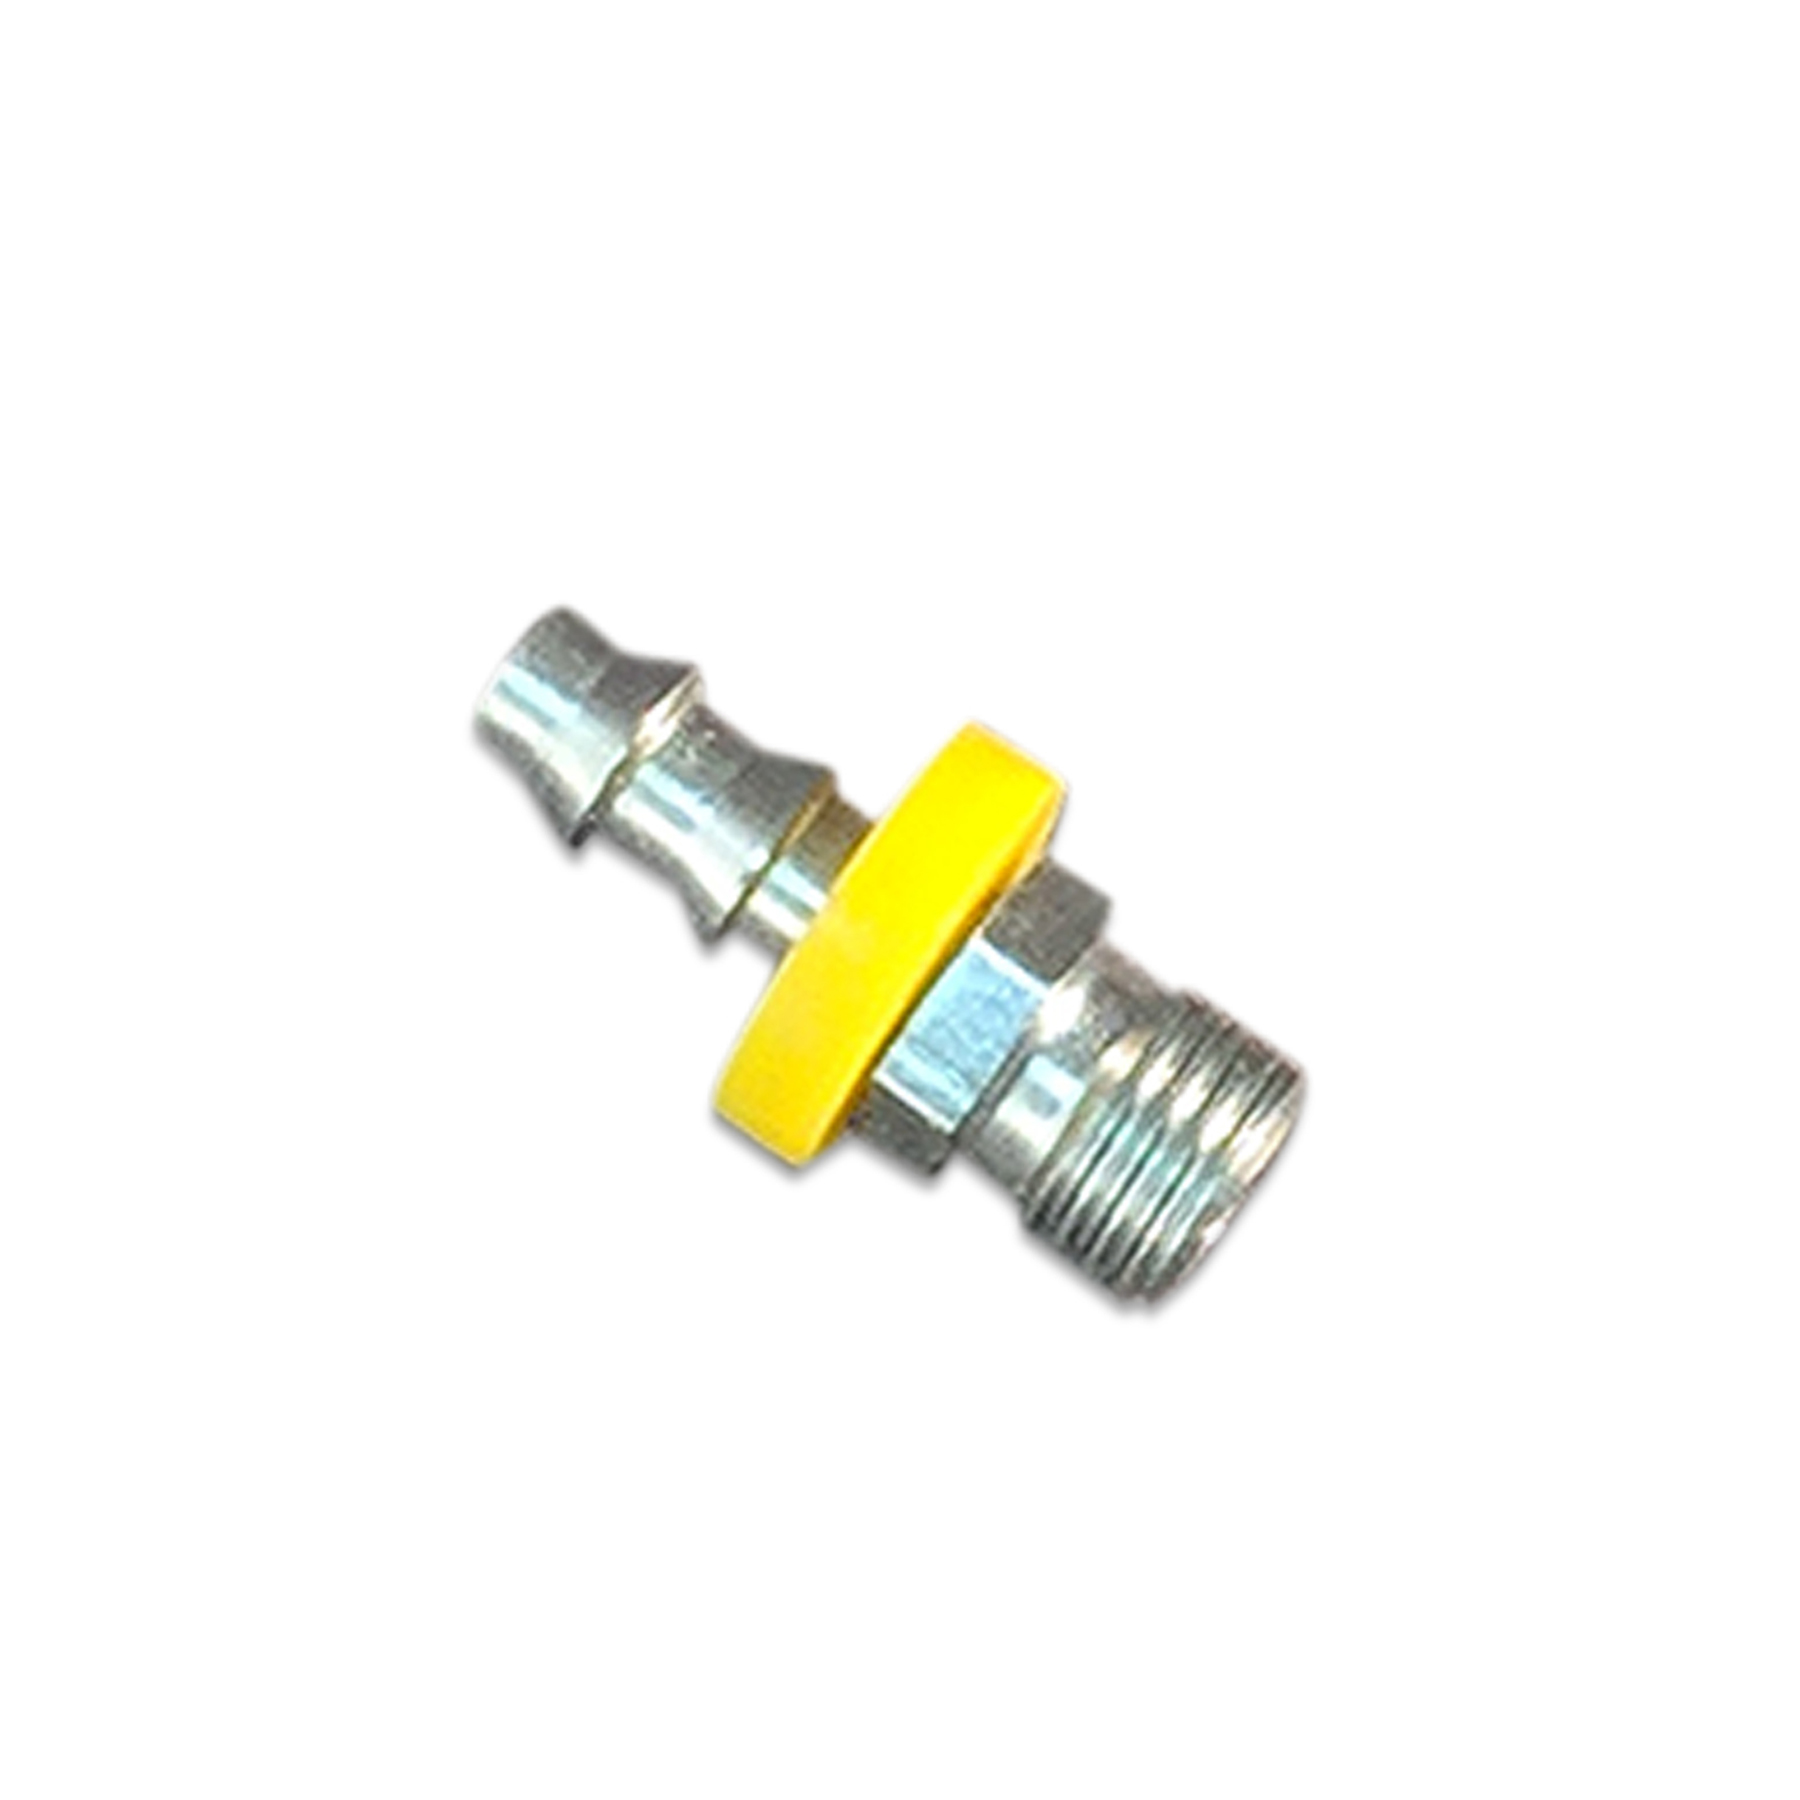 Stainless Steel Fitting (M) Metric L, #6 x 1/4 B